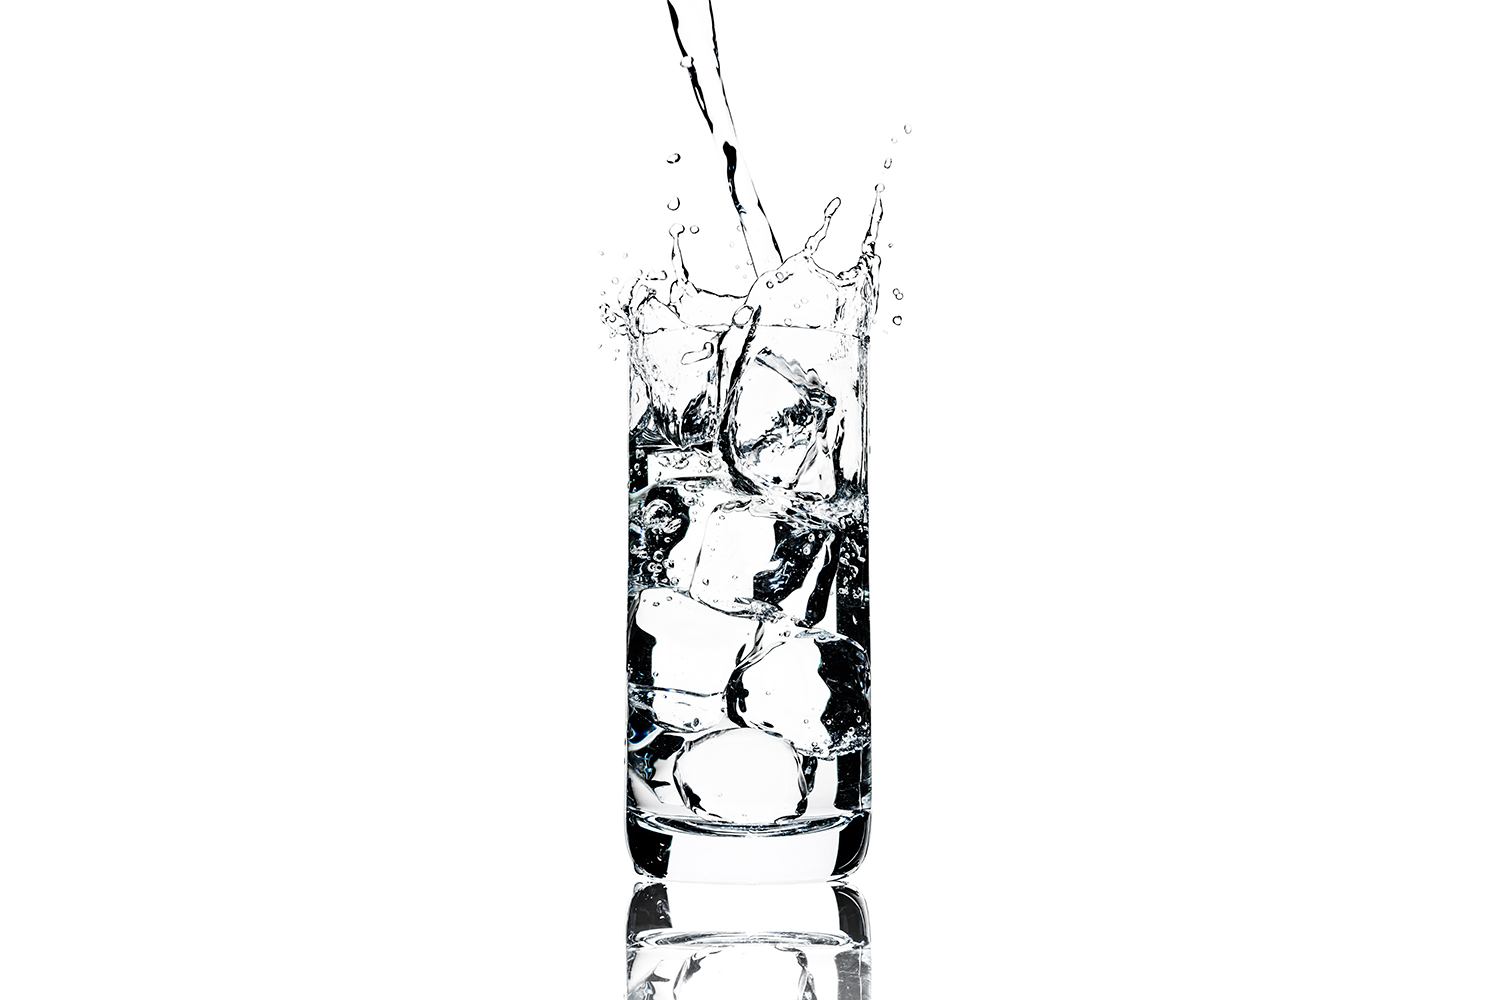 tom-medvedich-still-life-beverages-water-glass-splash-web-new.jpg